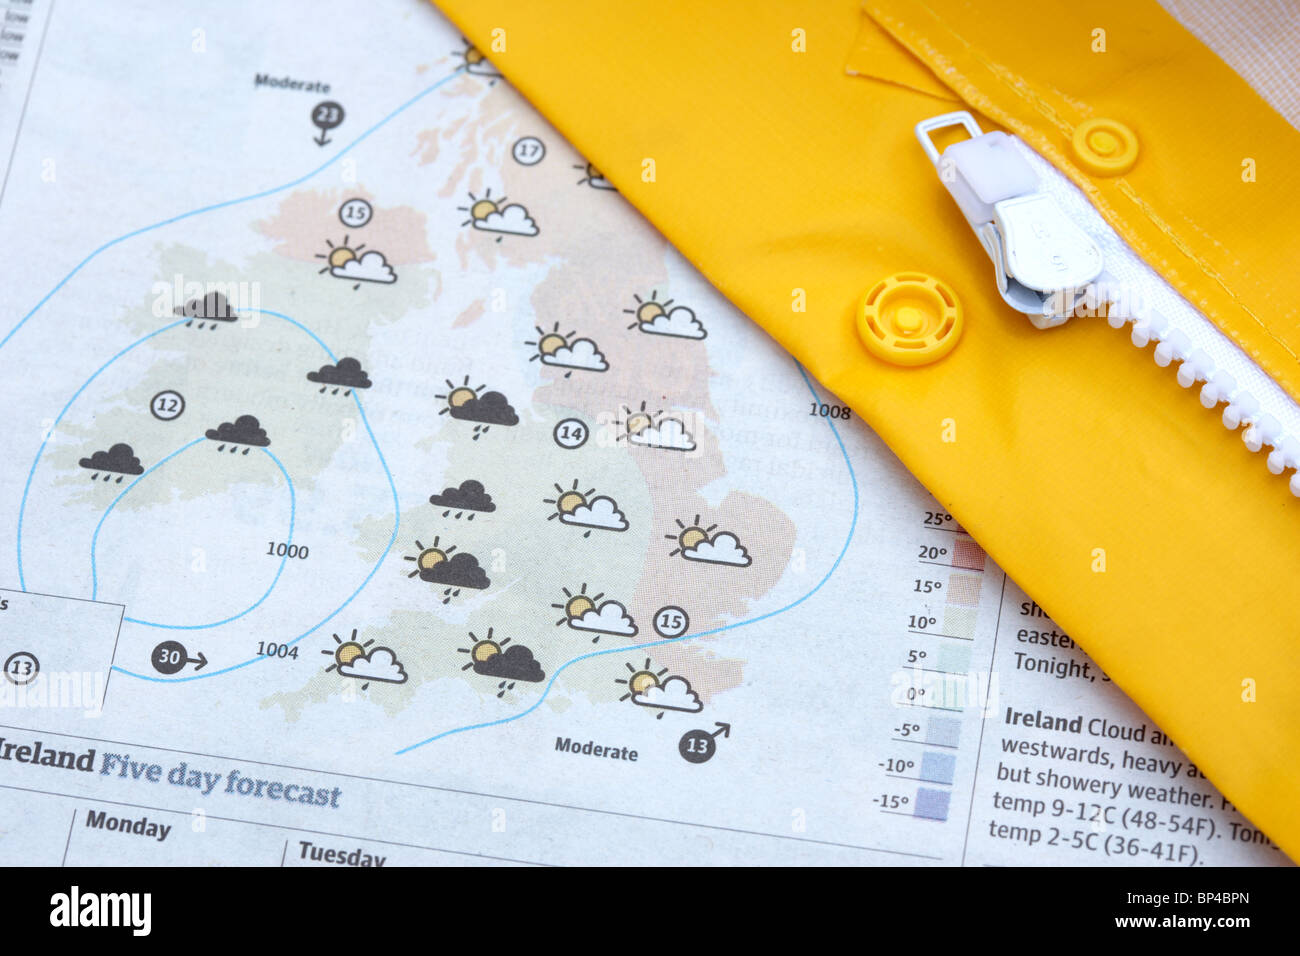 yellow waterproof coat and zip lying across the weather forecast in a newspaper - Stock Image